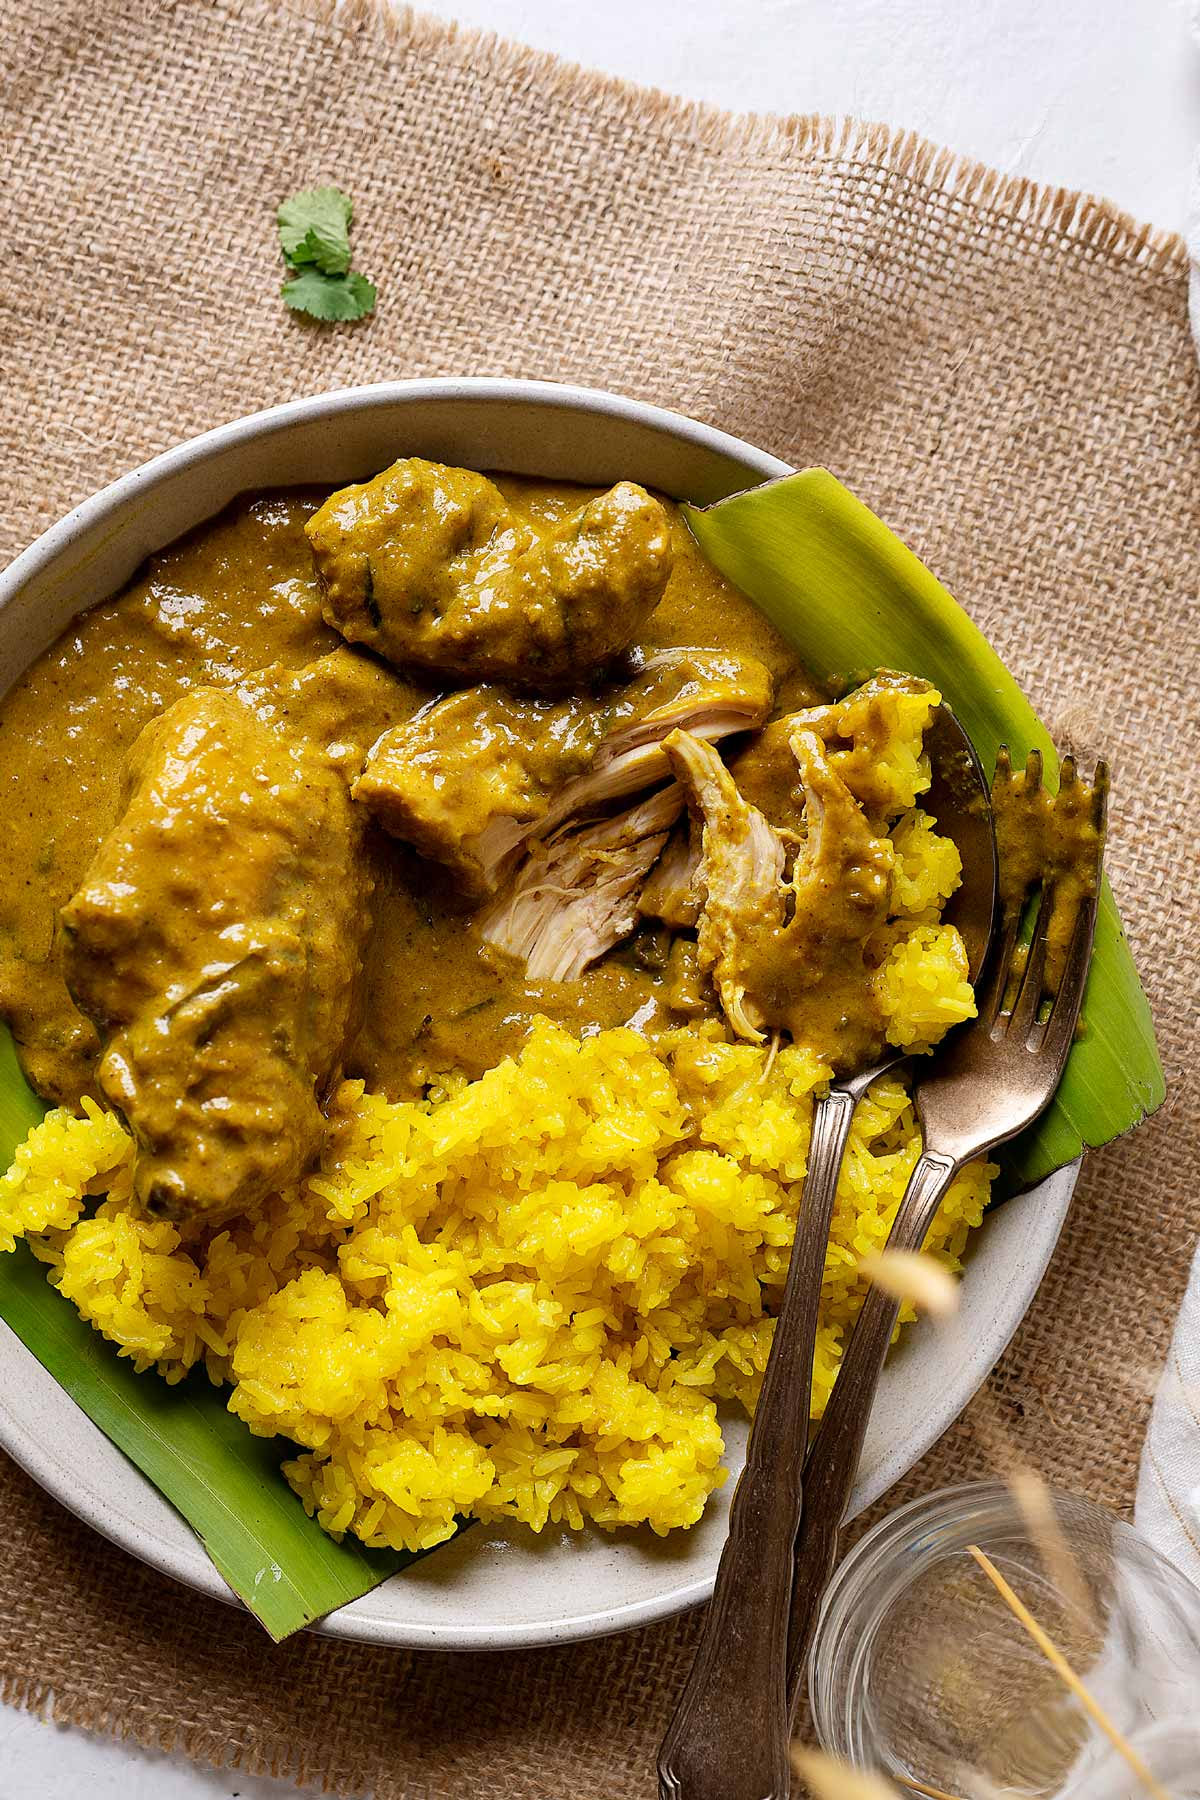 Half eaten slow cooker chicken rendang in a plate with some turmeric glutinous rice